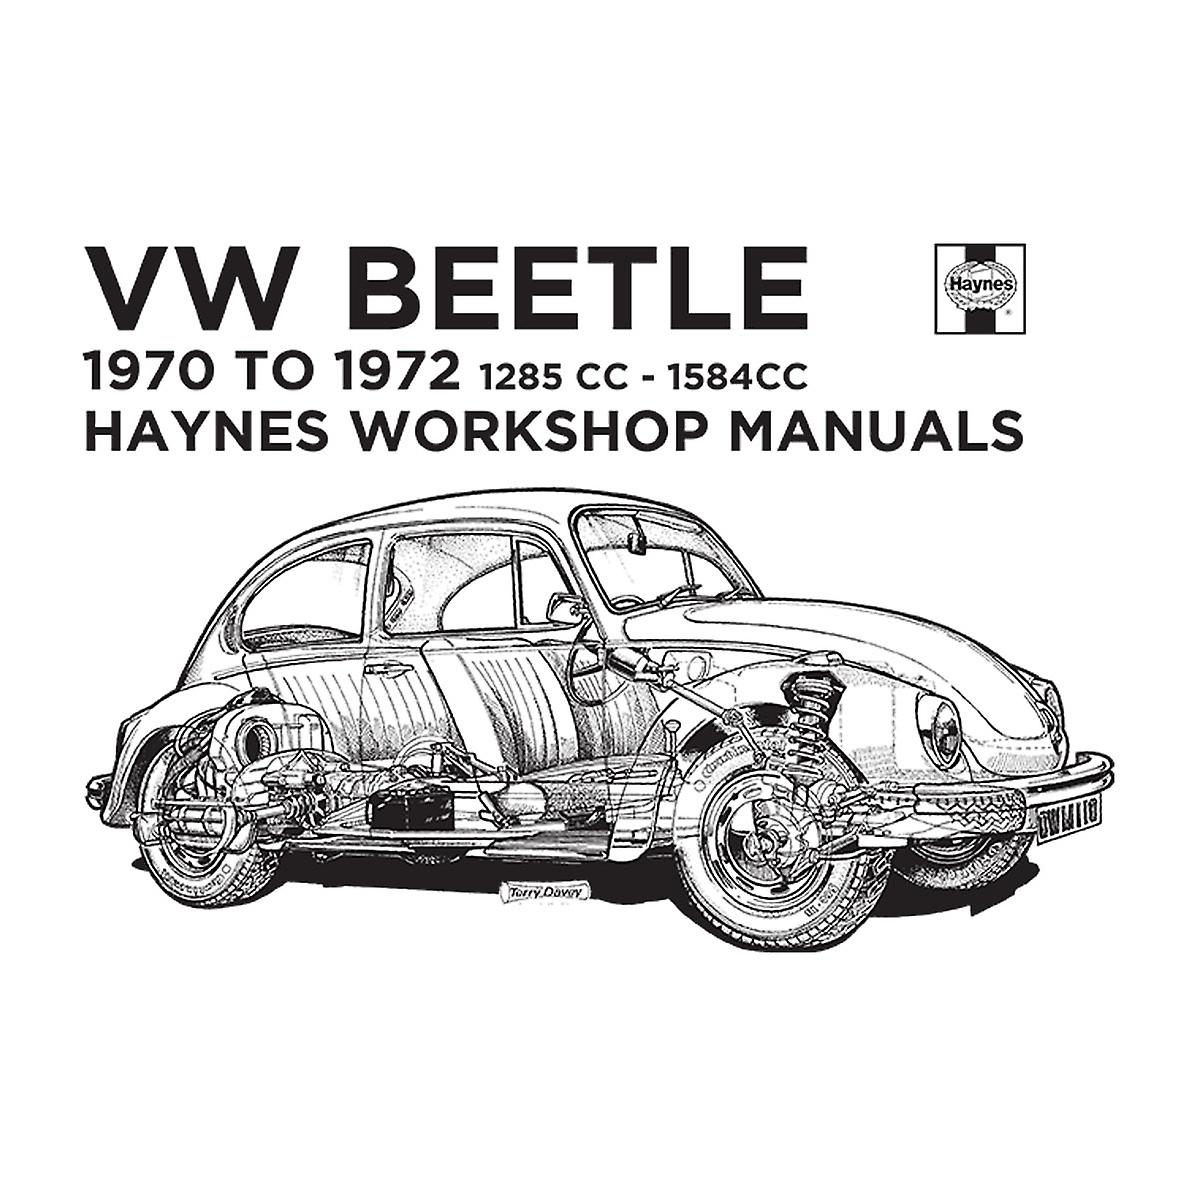 Haynes Workshop Manual VW Beetle 70 To 72 Black Women's T